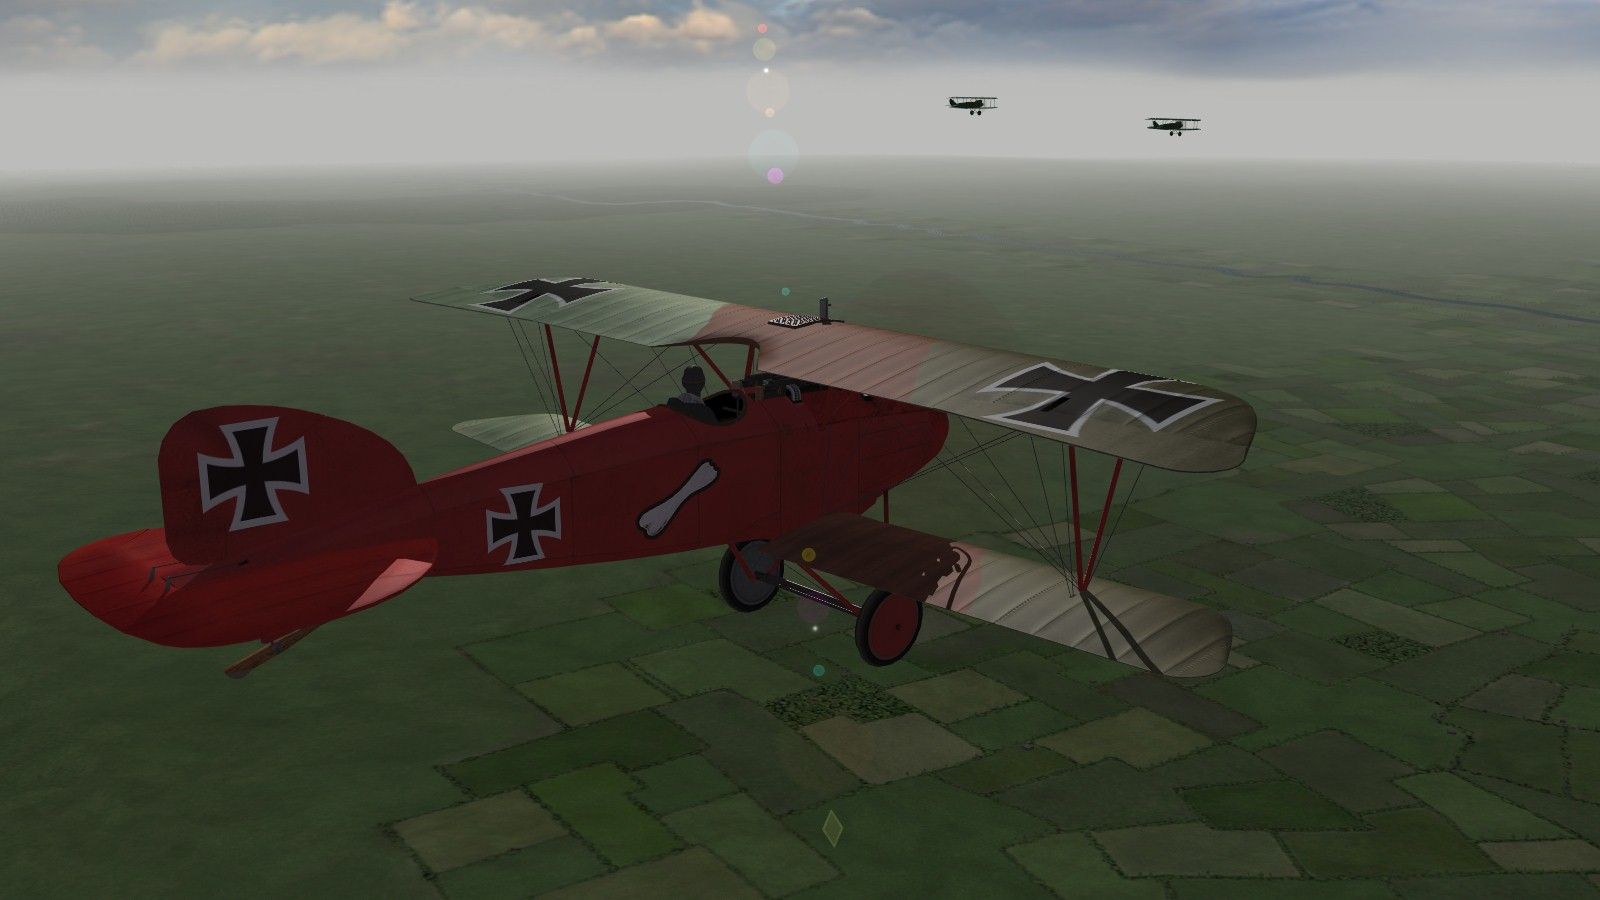 First Eagles 2, Armchair Aces campaign, Jasta 11, March 1917 - overtaking a pair of DFWs while leading my flight to our patrol area